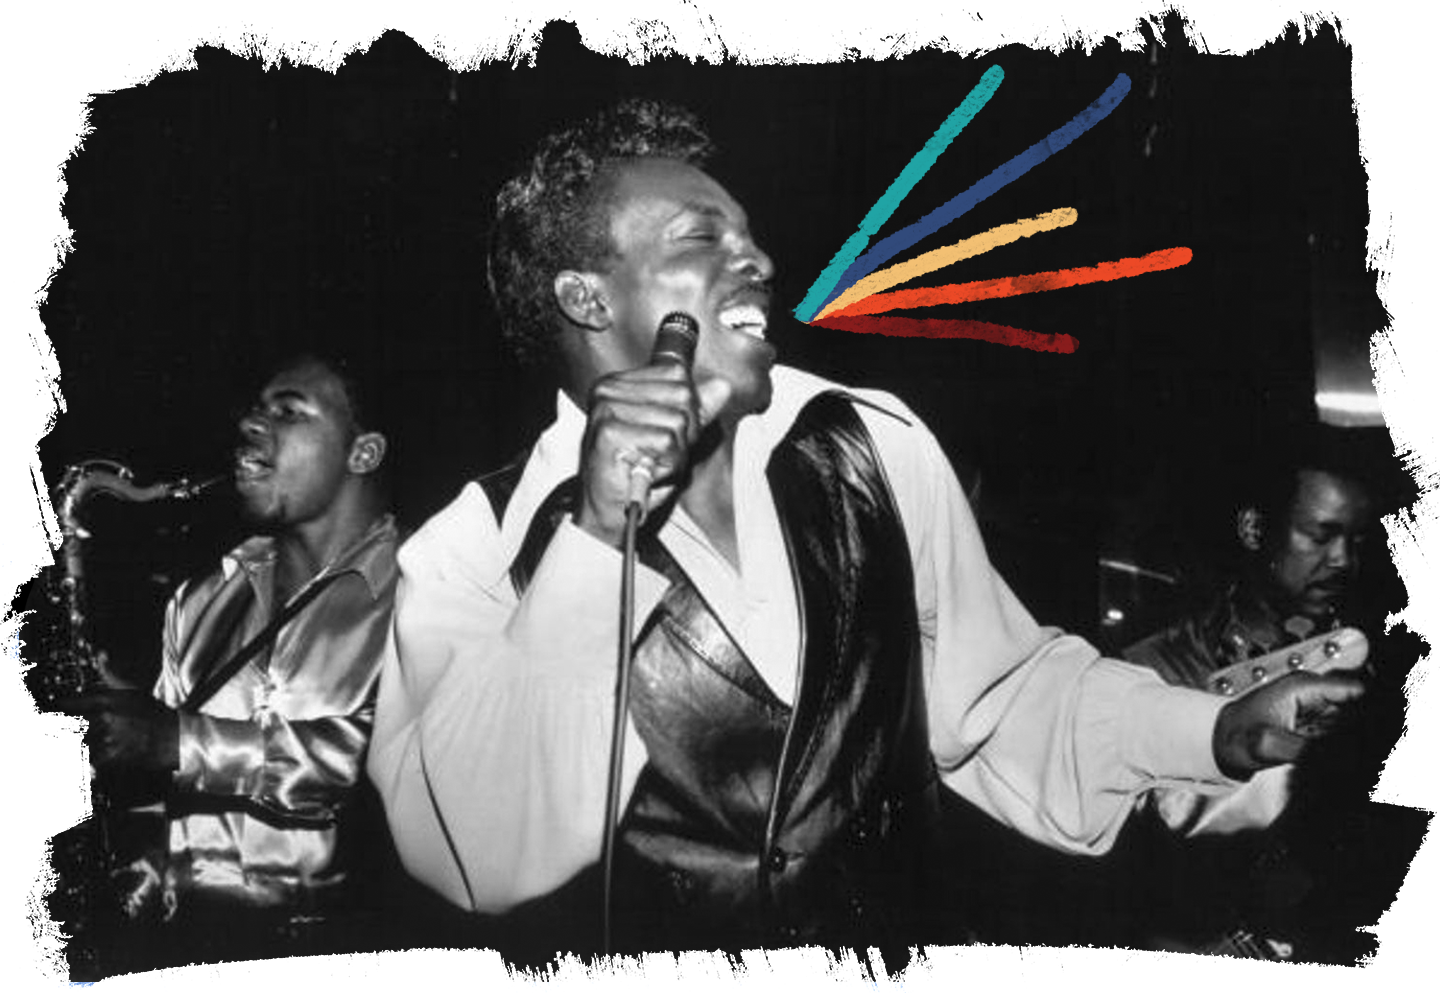 Wilson Pickett's soul sound was rooted in the gospel, learning to sing in churches and singing professionally with The Falcons, a Detroit-based vocal group.